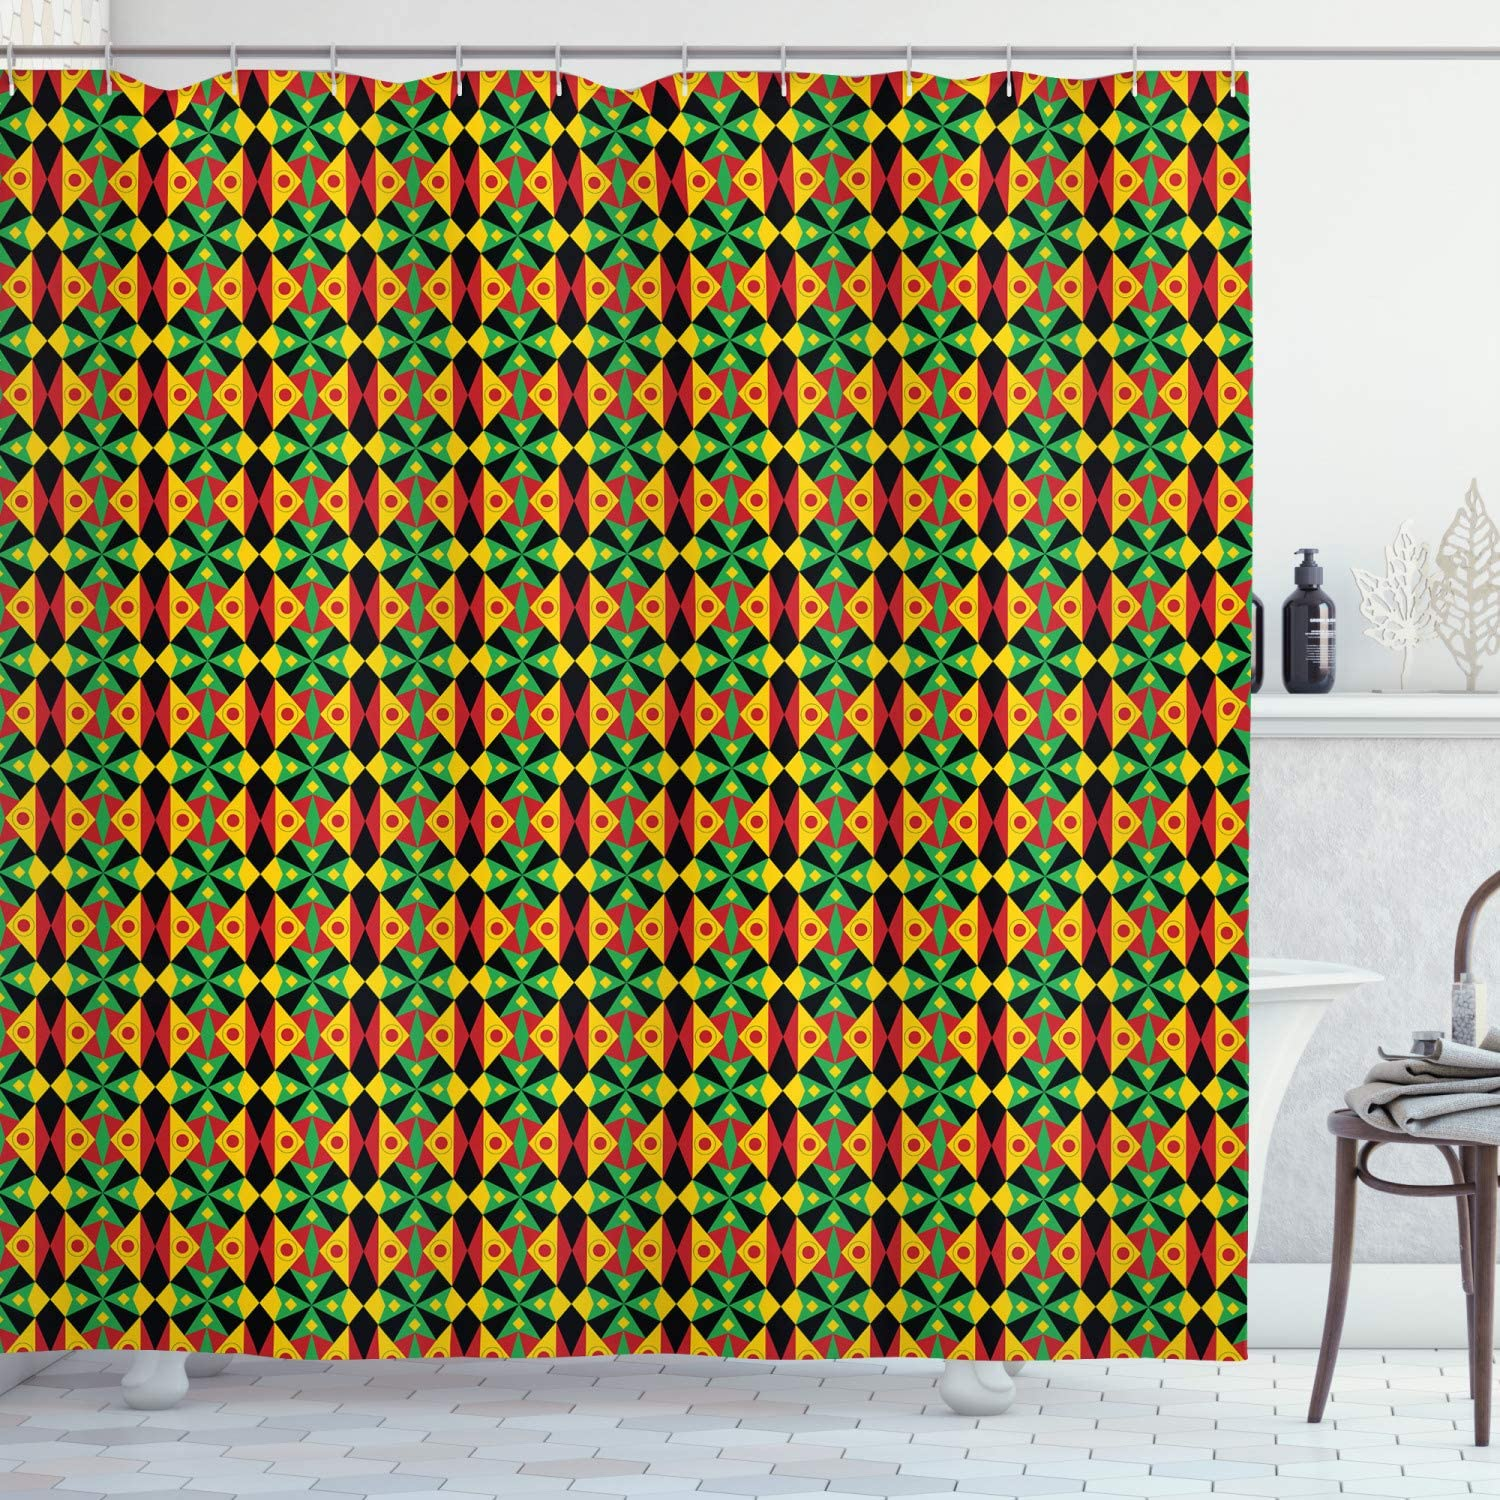 Ambesonne Kente Pattern Shower Curtain, Indigenous Heritage Tile Design with Triangles and Circles Namibia Botswana, Cloth Fabric Bathroom Decor Set with Hooks, 70